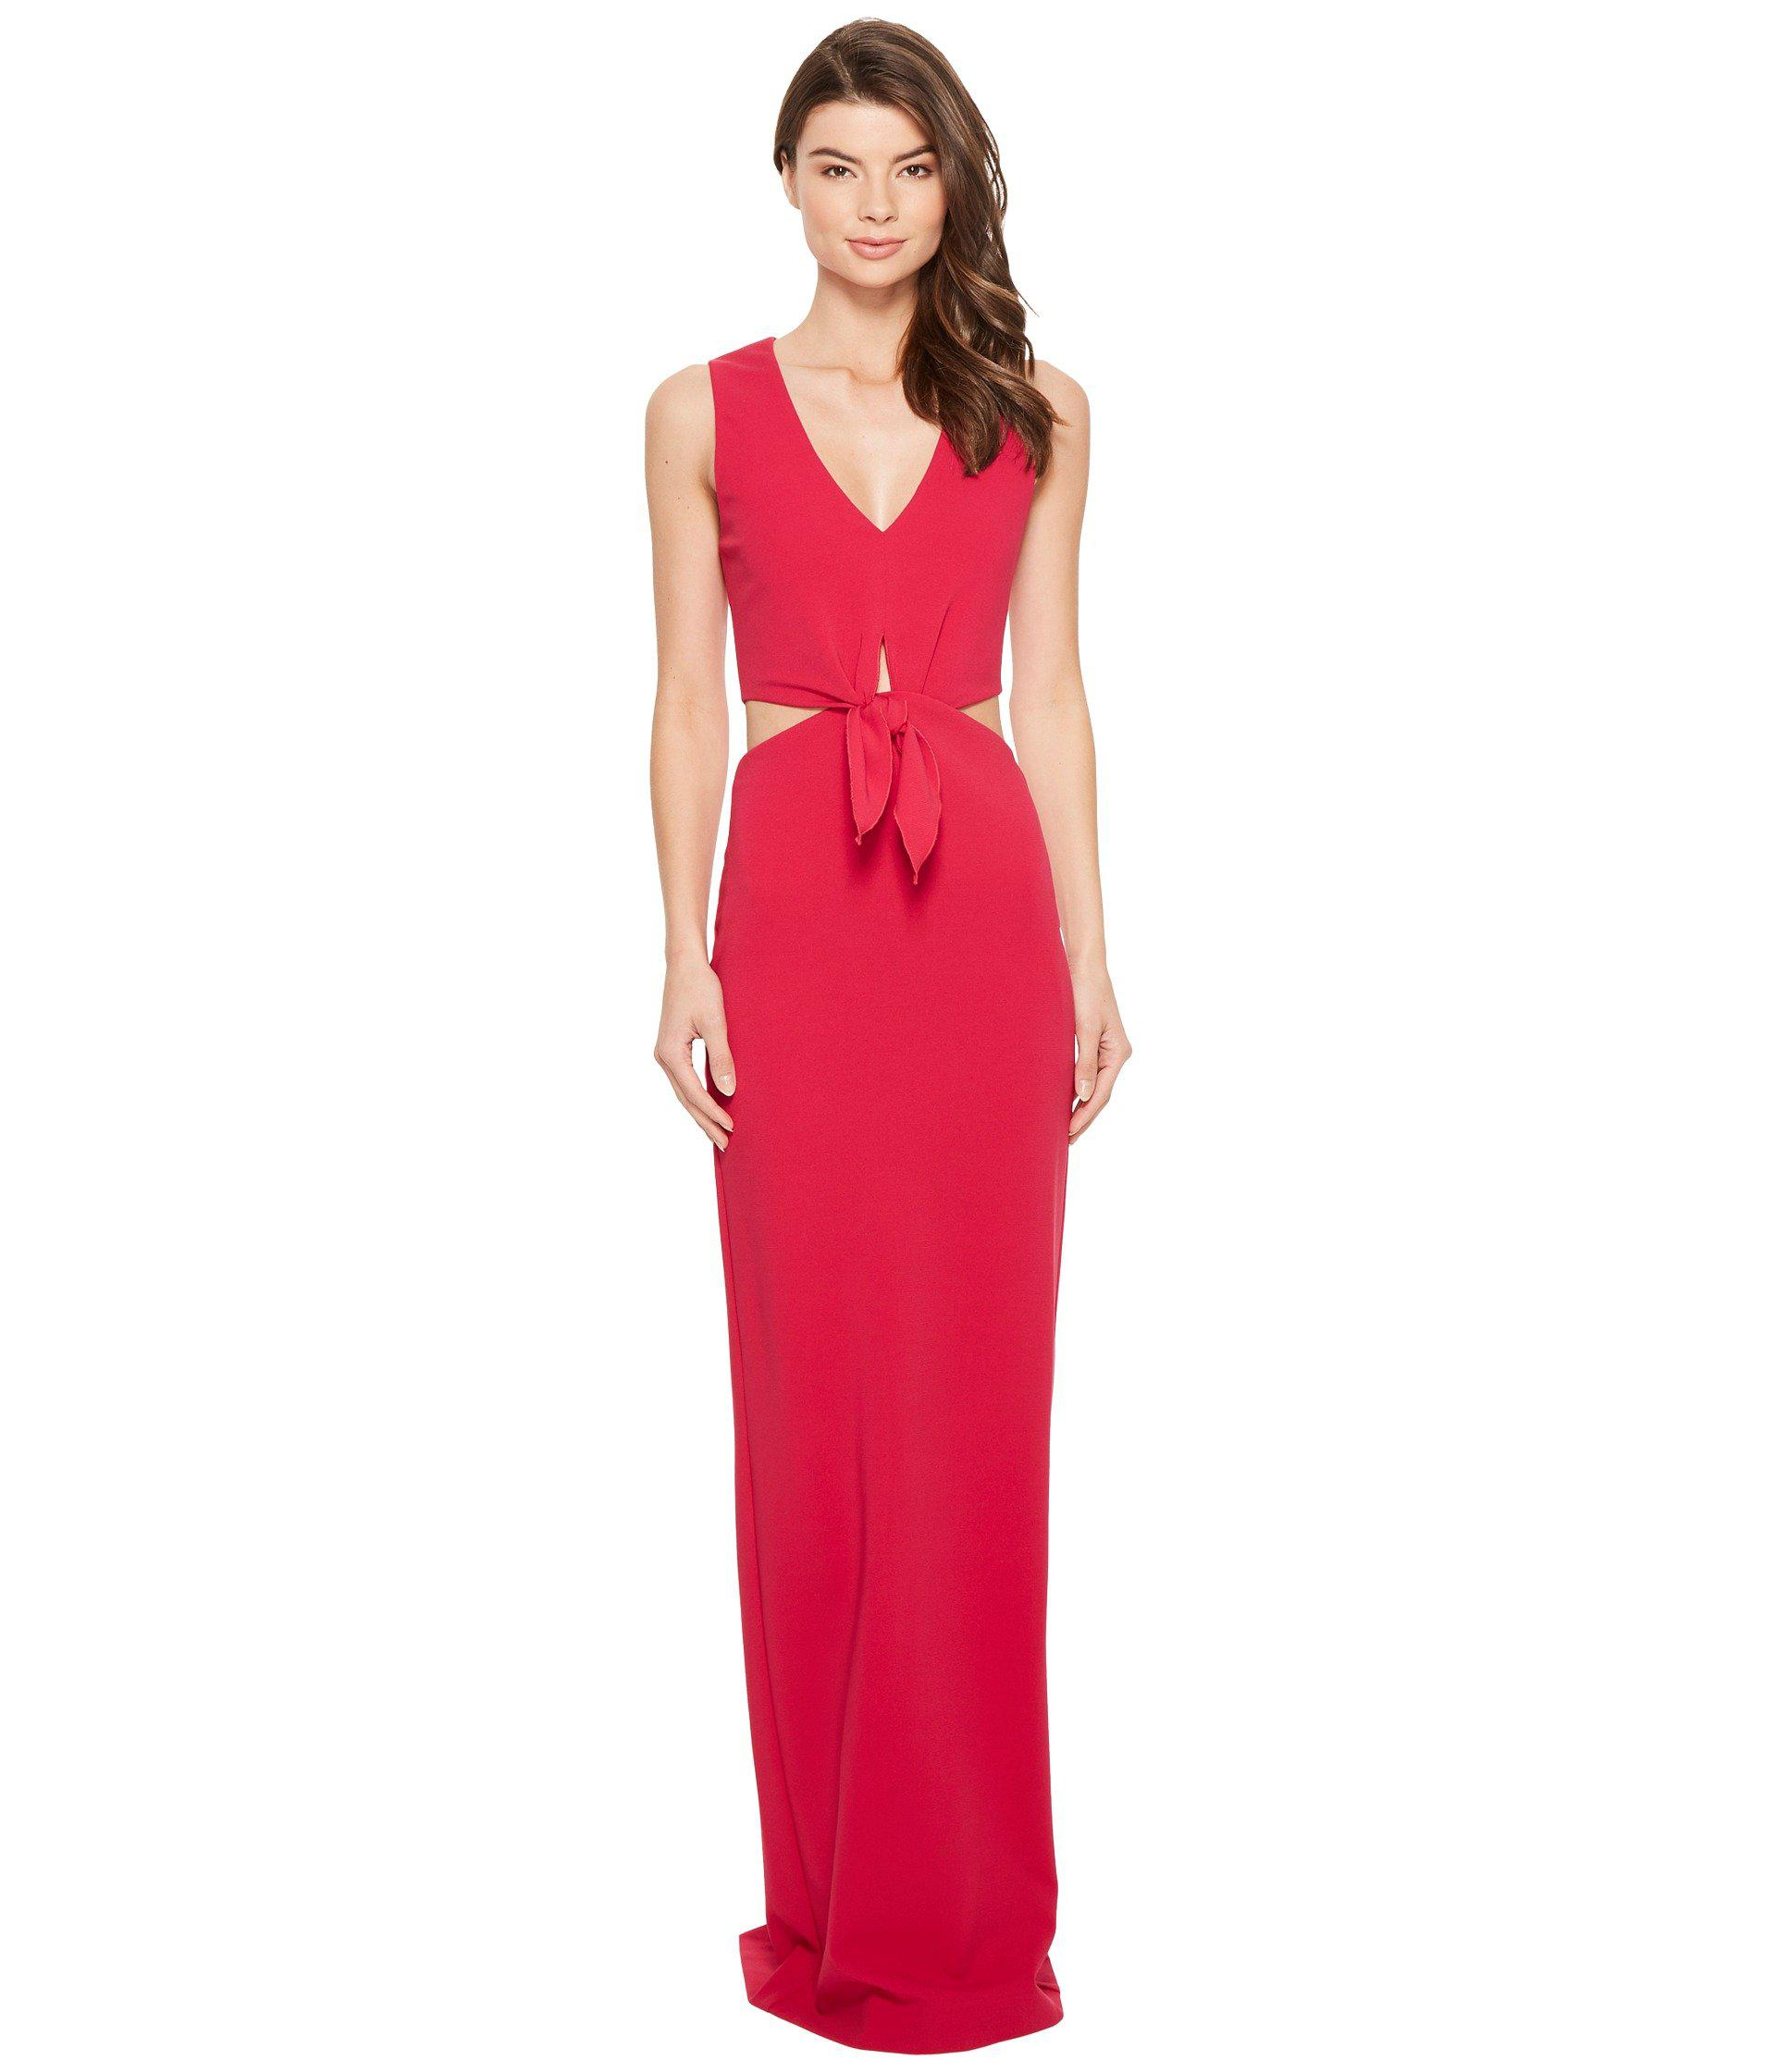 Lyst - Nicole Miller Grayson Structured Heavy Jersey Gown in Red